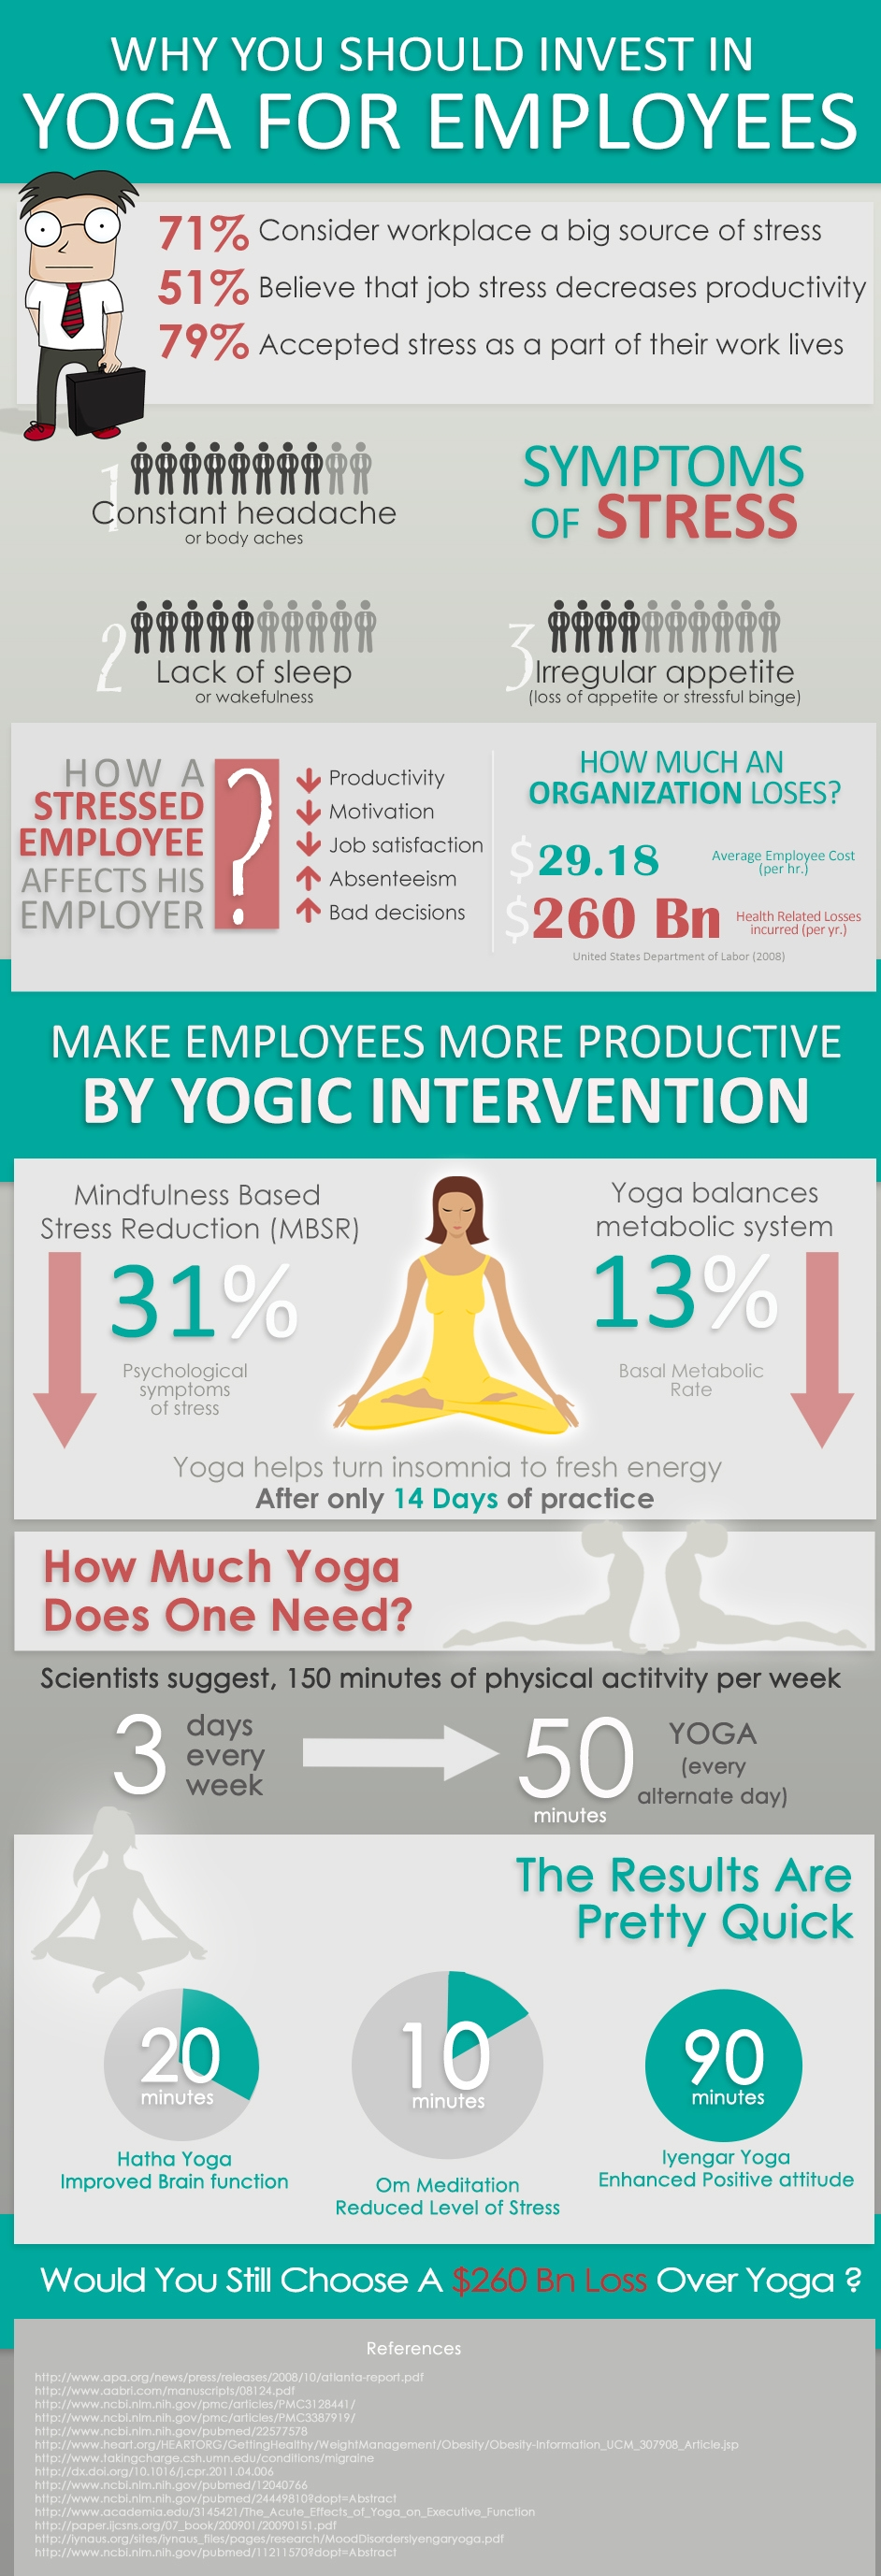 Yoga-for-employees-workout-trends1.jpg